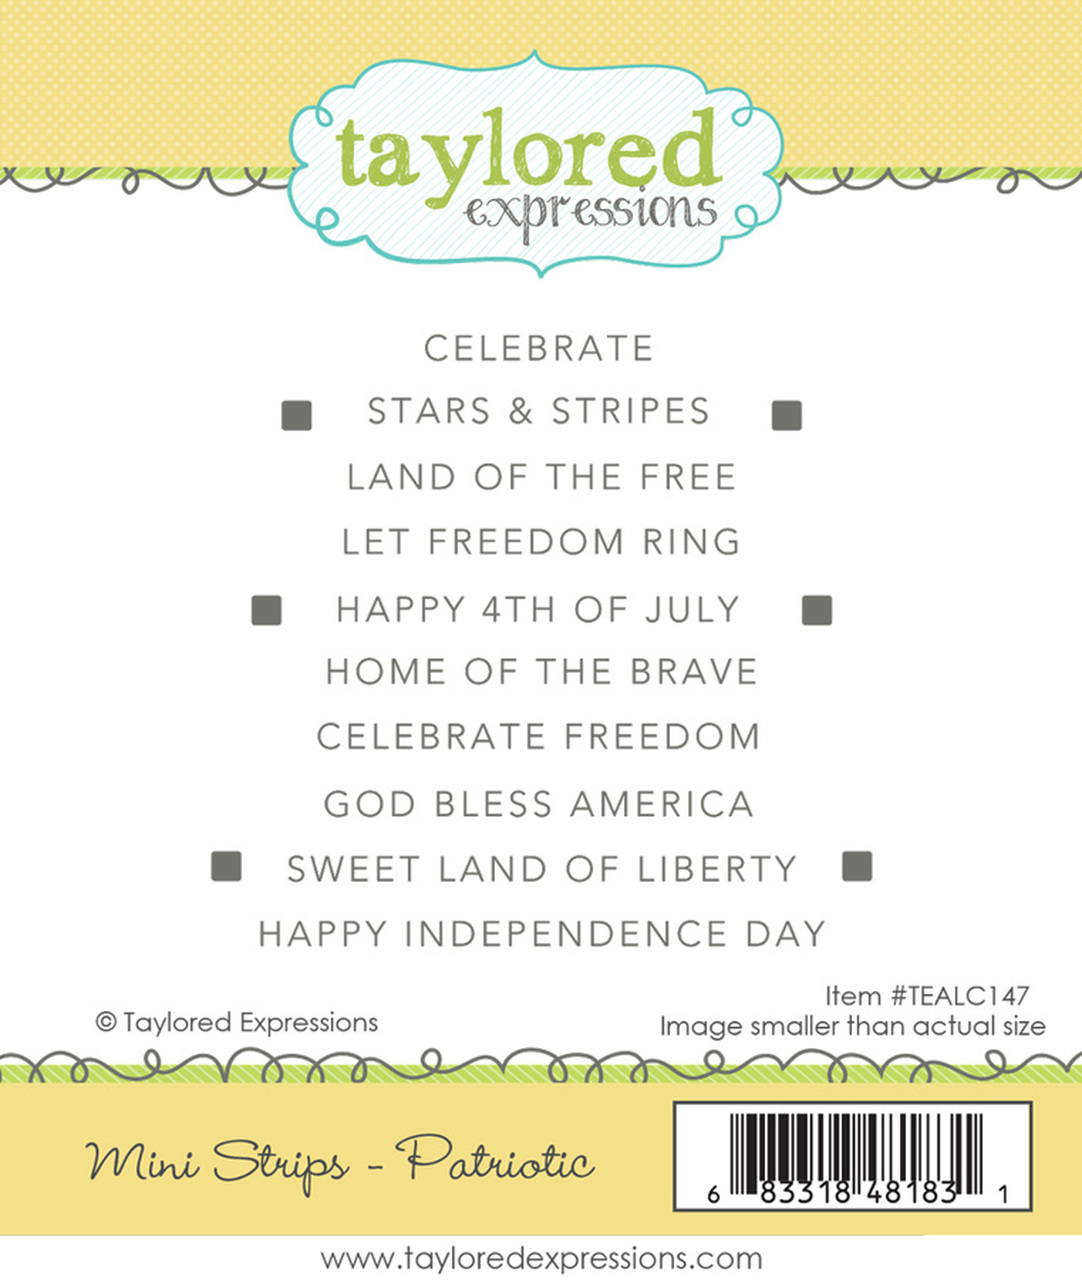 *NEW* - Taylored Expression - MINI STRIPS - PATRIOTIC